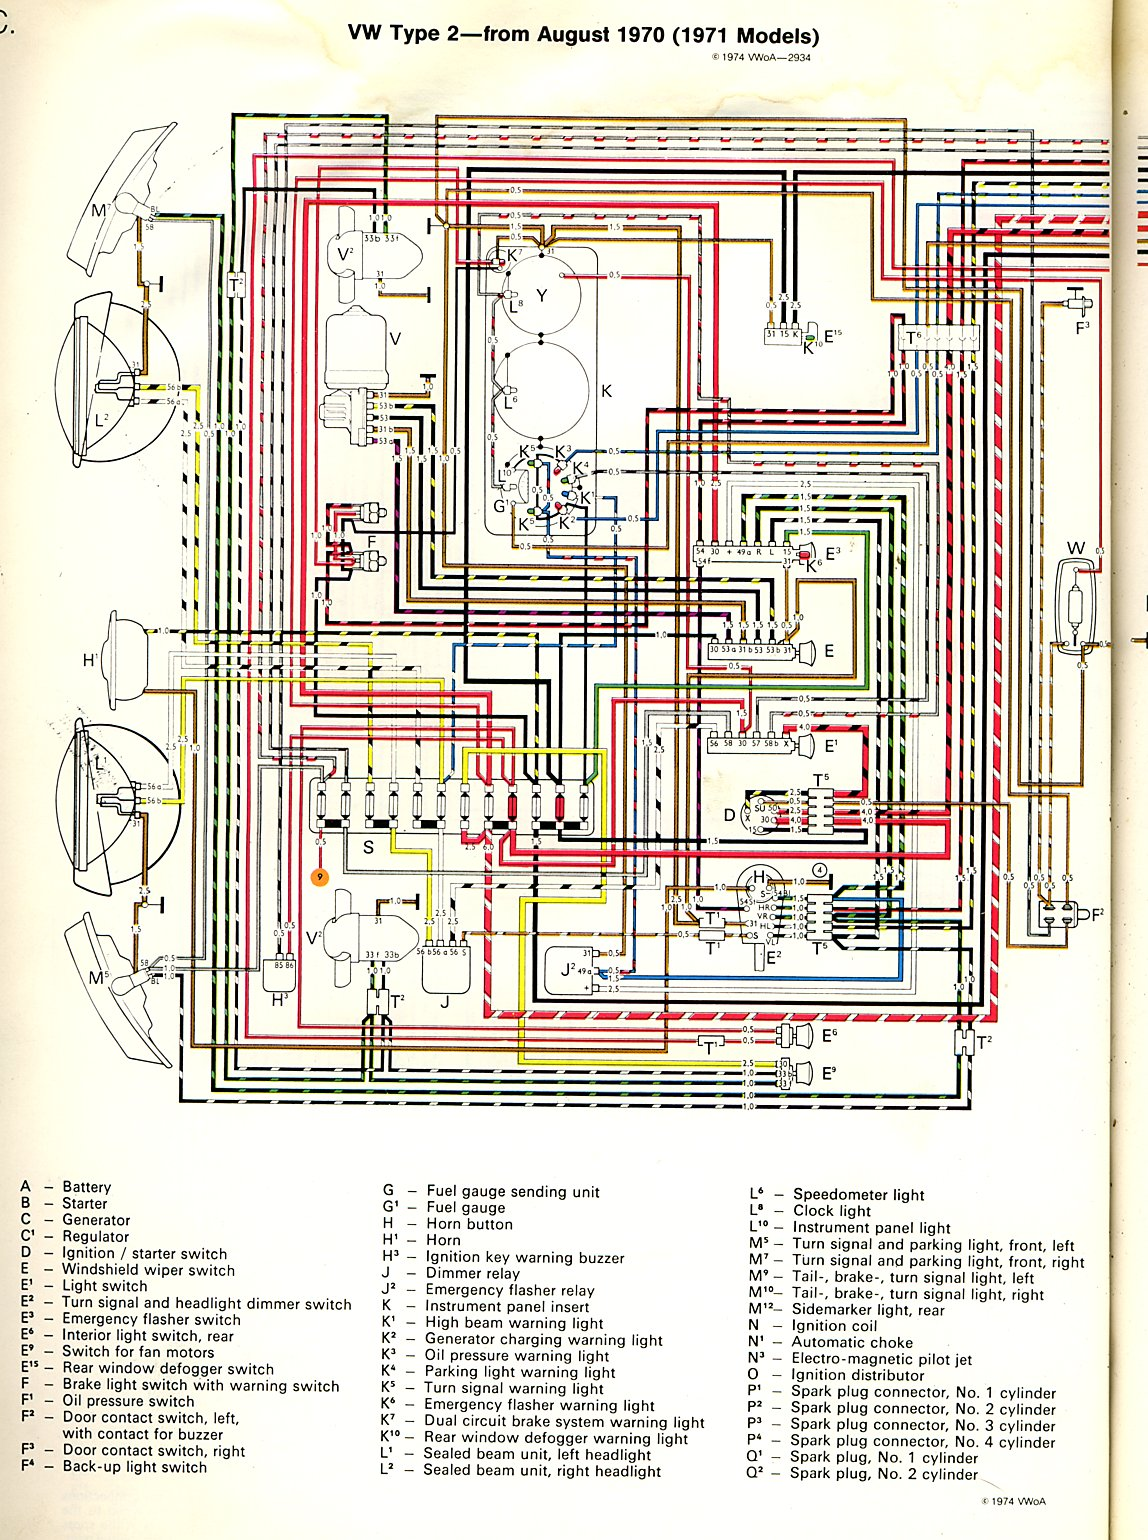 baybus_71a 71 vw bus wiring diagram 1970 vw bus fuse box diagram \u2022 wiring Wiring Harness Diagram at pacquiaovsvargaslive.co